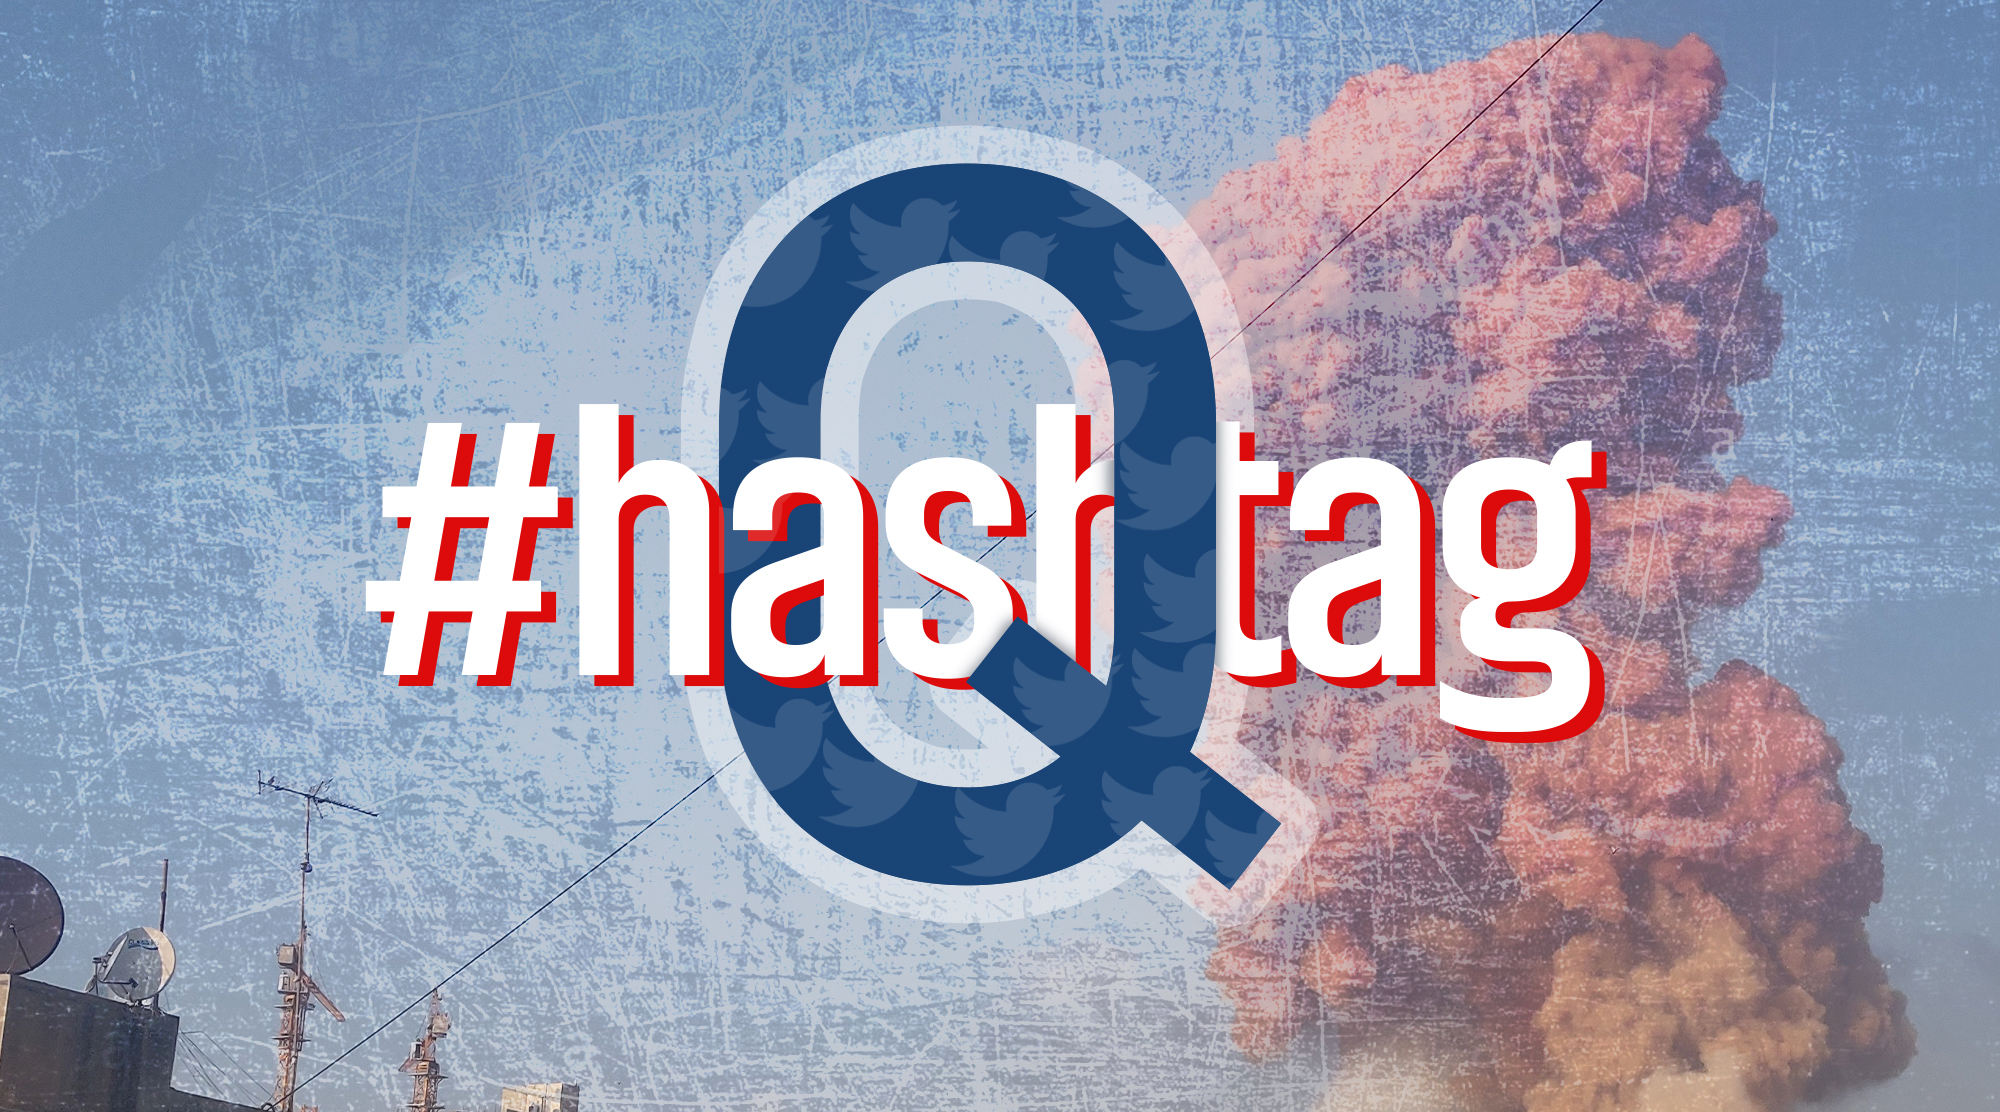 Dropping Hashtags and Dodging Bans: How QAnon Used a TikTok Trick to Spread Disinformation About the Beirut Explosion